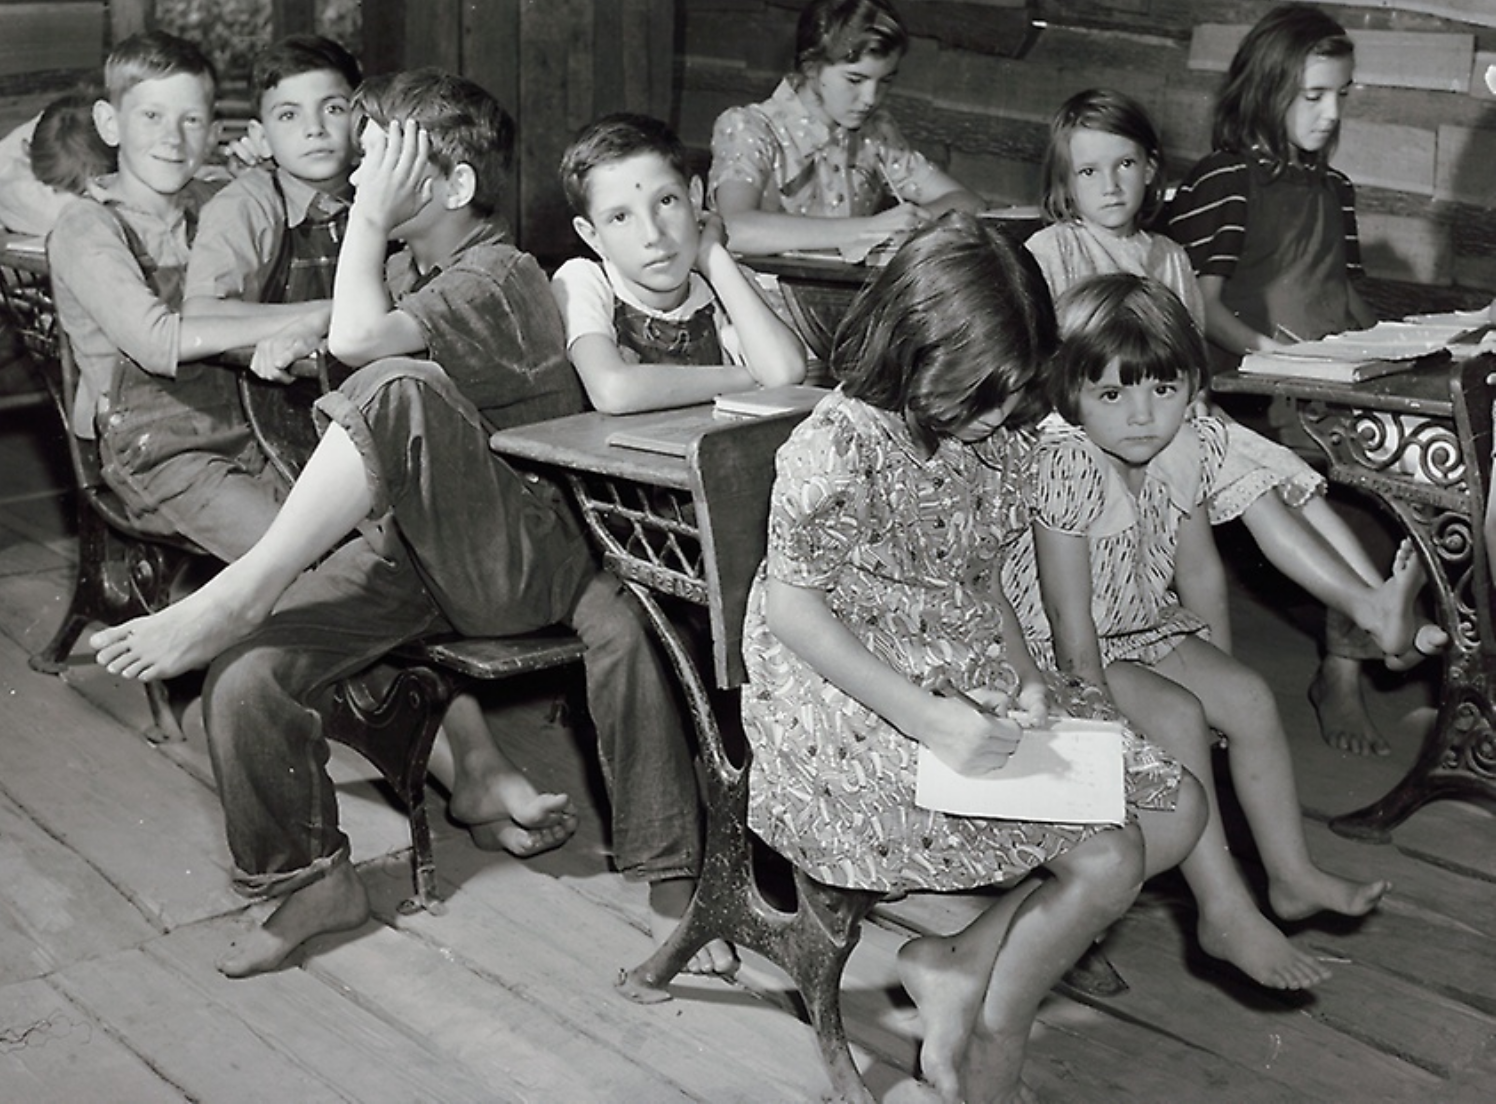 One Room School House, Breathitt County, Kentucky, 1940, Marion Post Wolcott